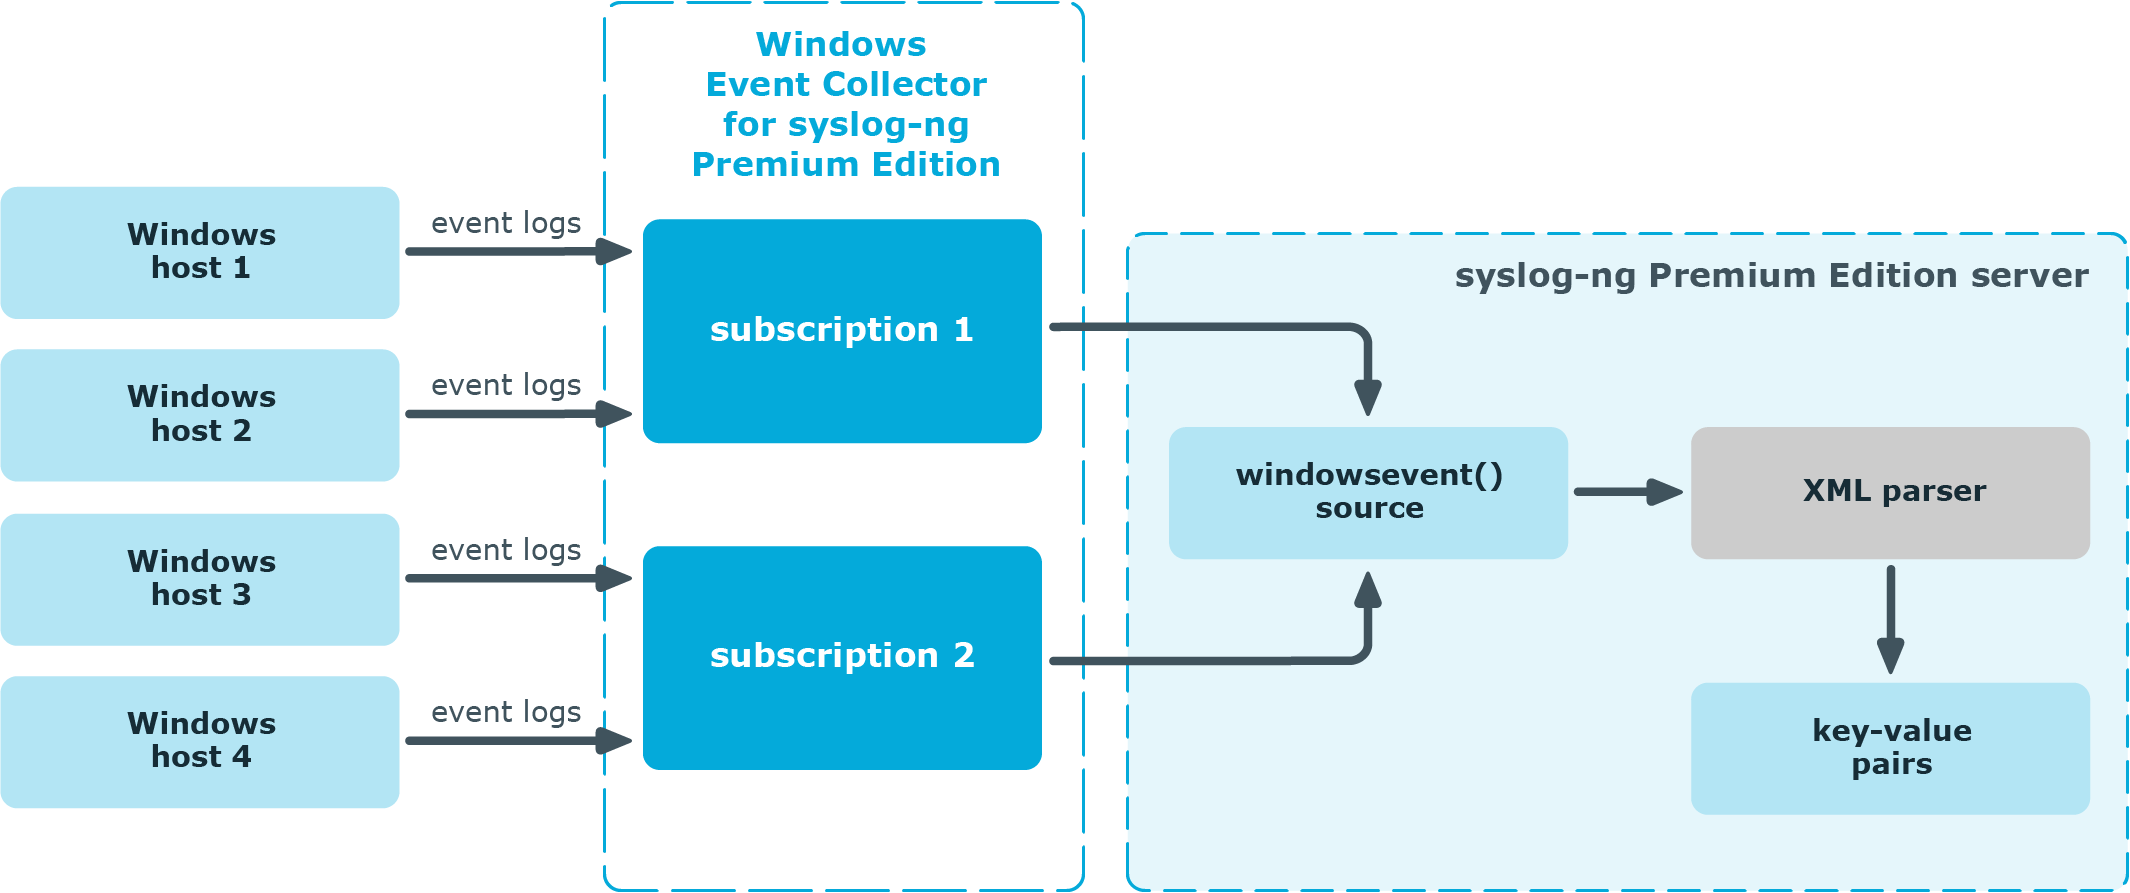 Syslog Ng Premium Edition 7 0 9 Windows Event Collector